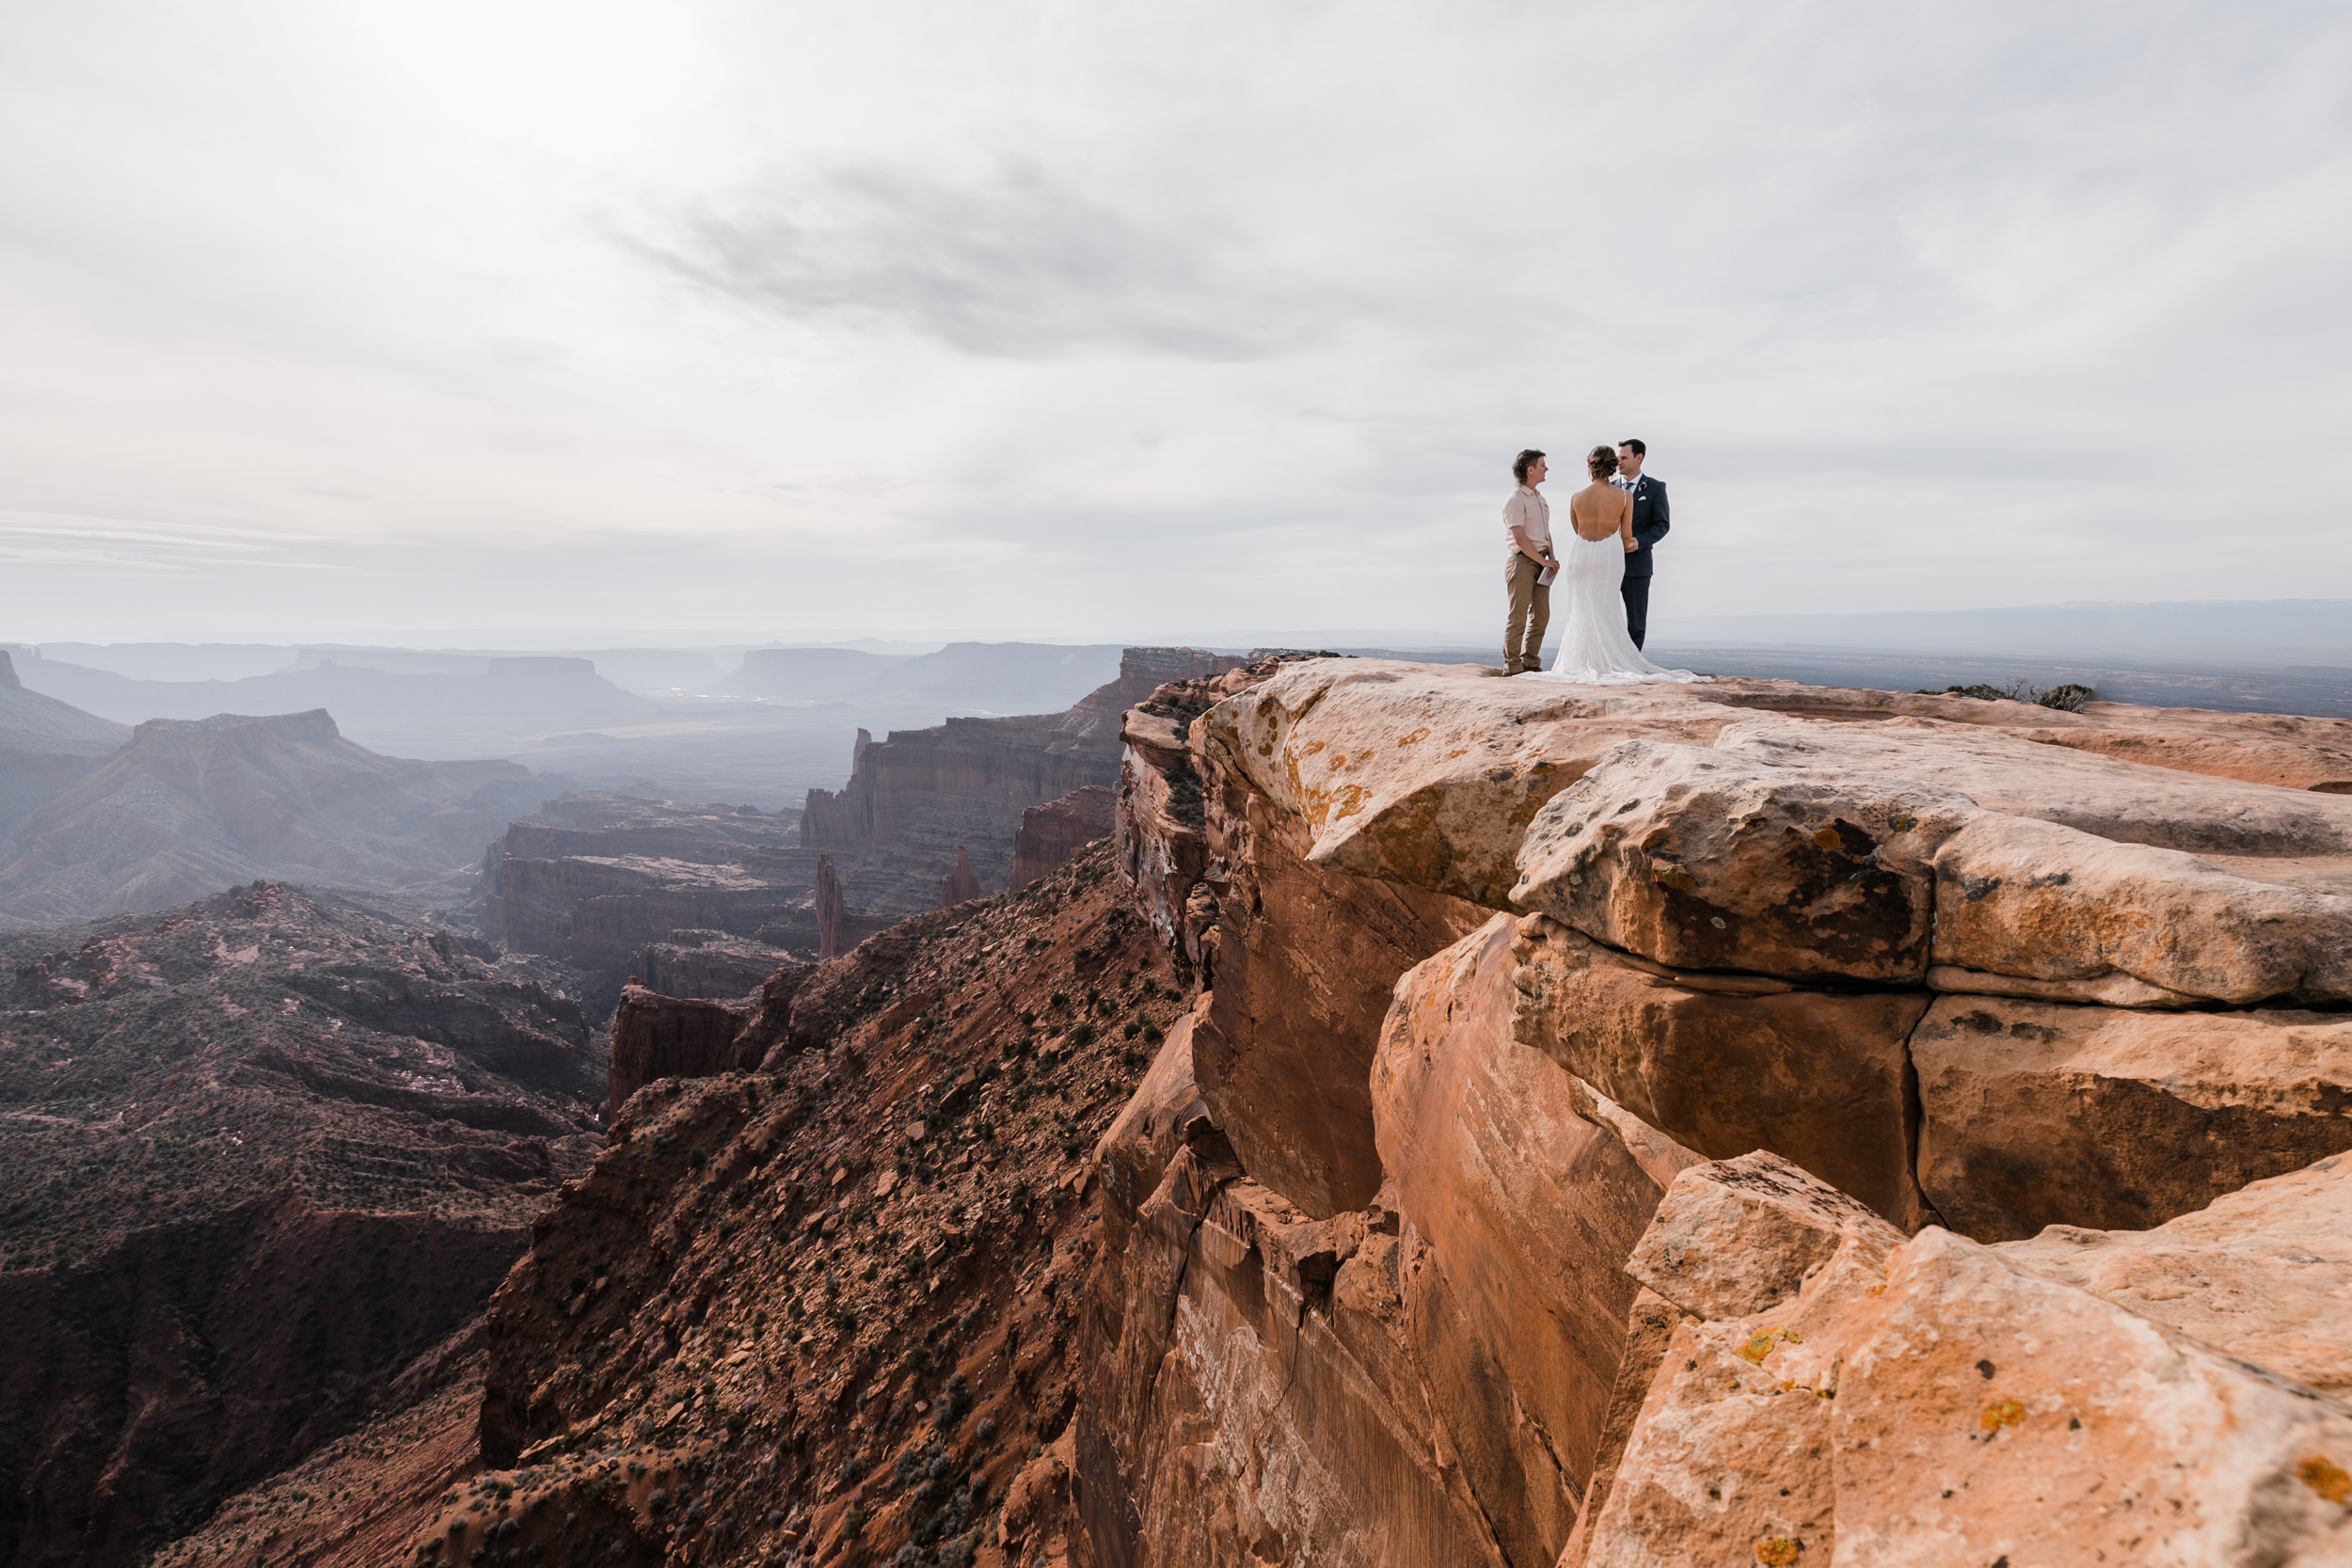 Hearnes-Elopement-Photography-Moab-Jeep-Wedding-15.jpg